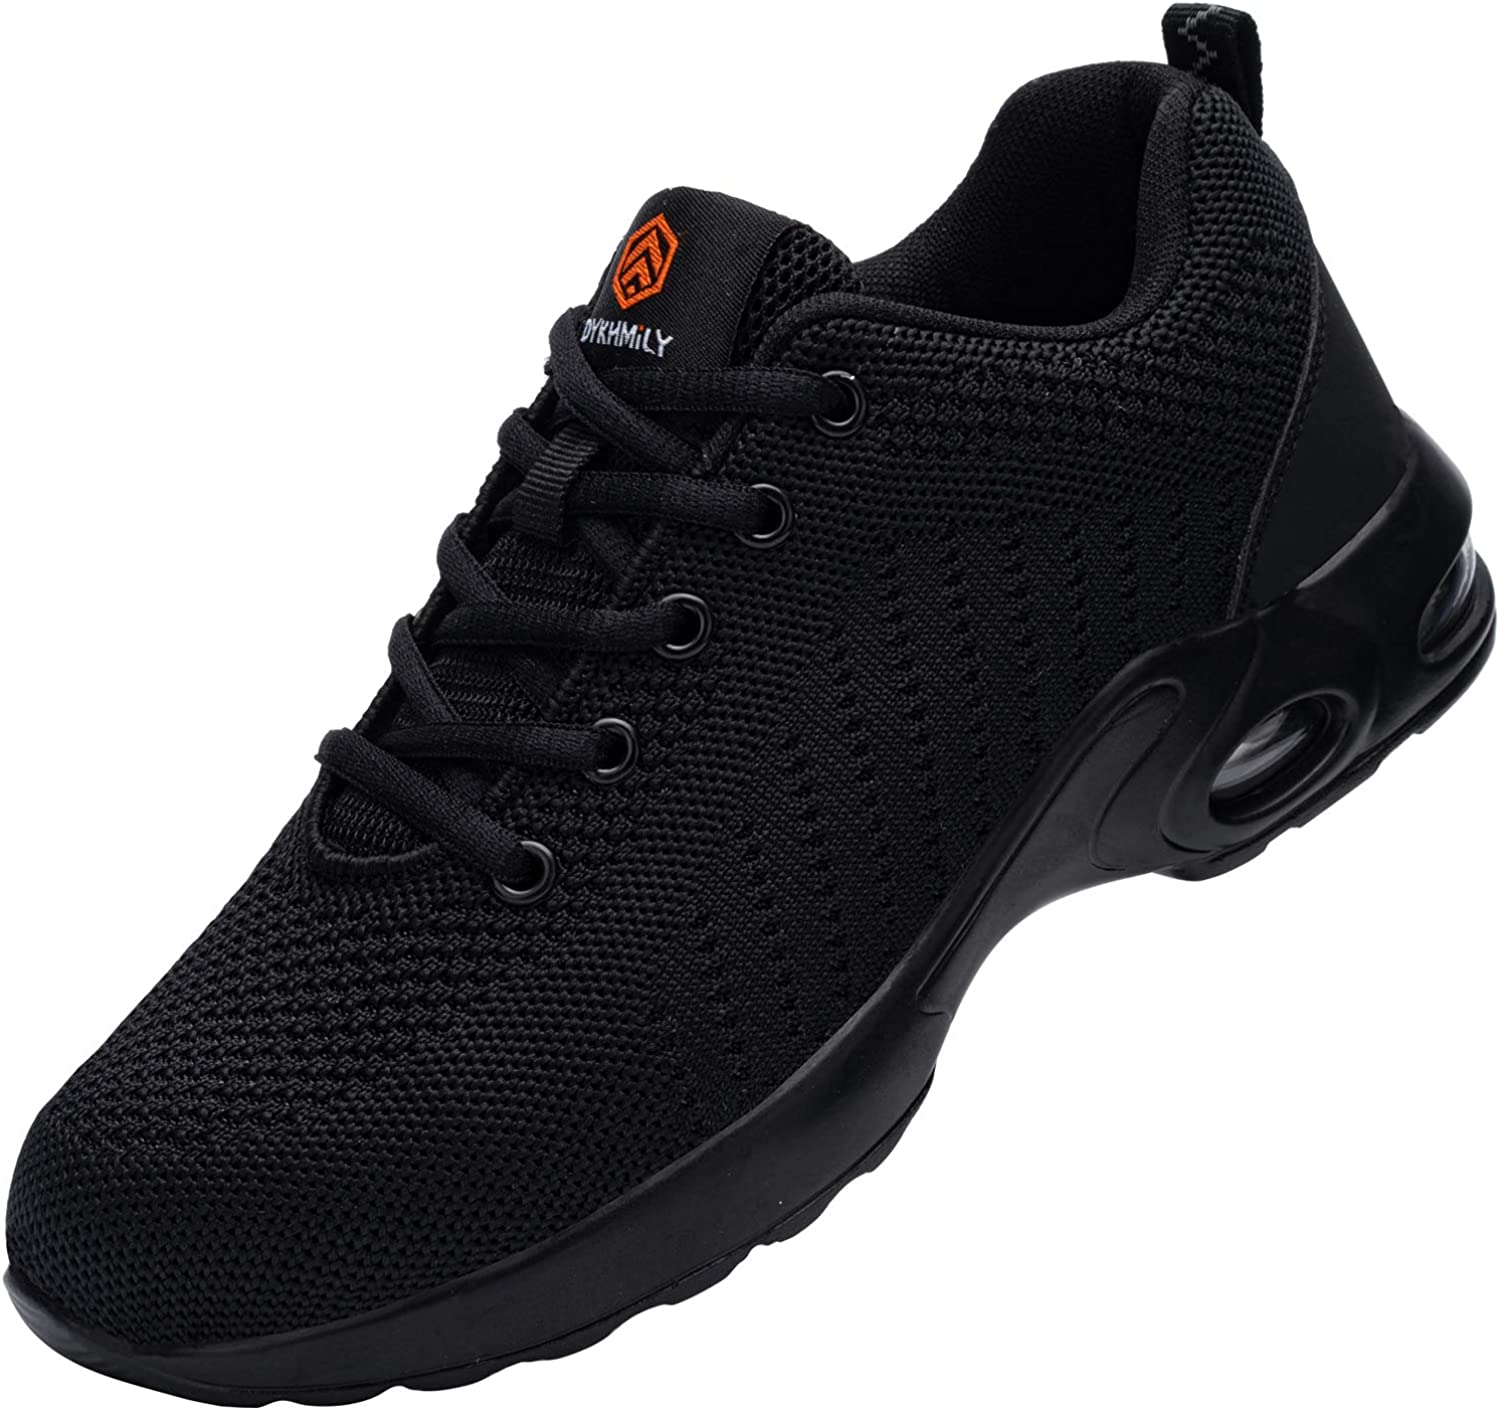 DYKHMILY Steel Toe Shoes Men Women, Indestructible Safety Slip Resistant Work Shoes, D9003: Shoes